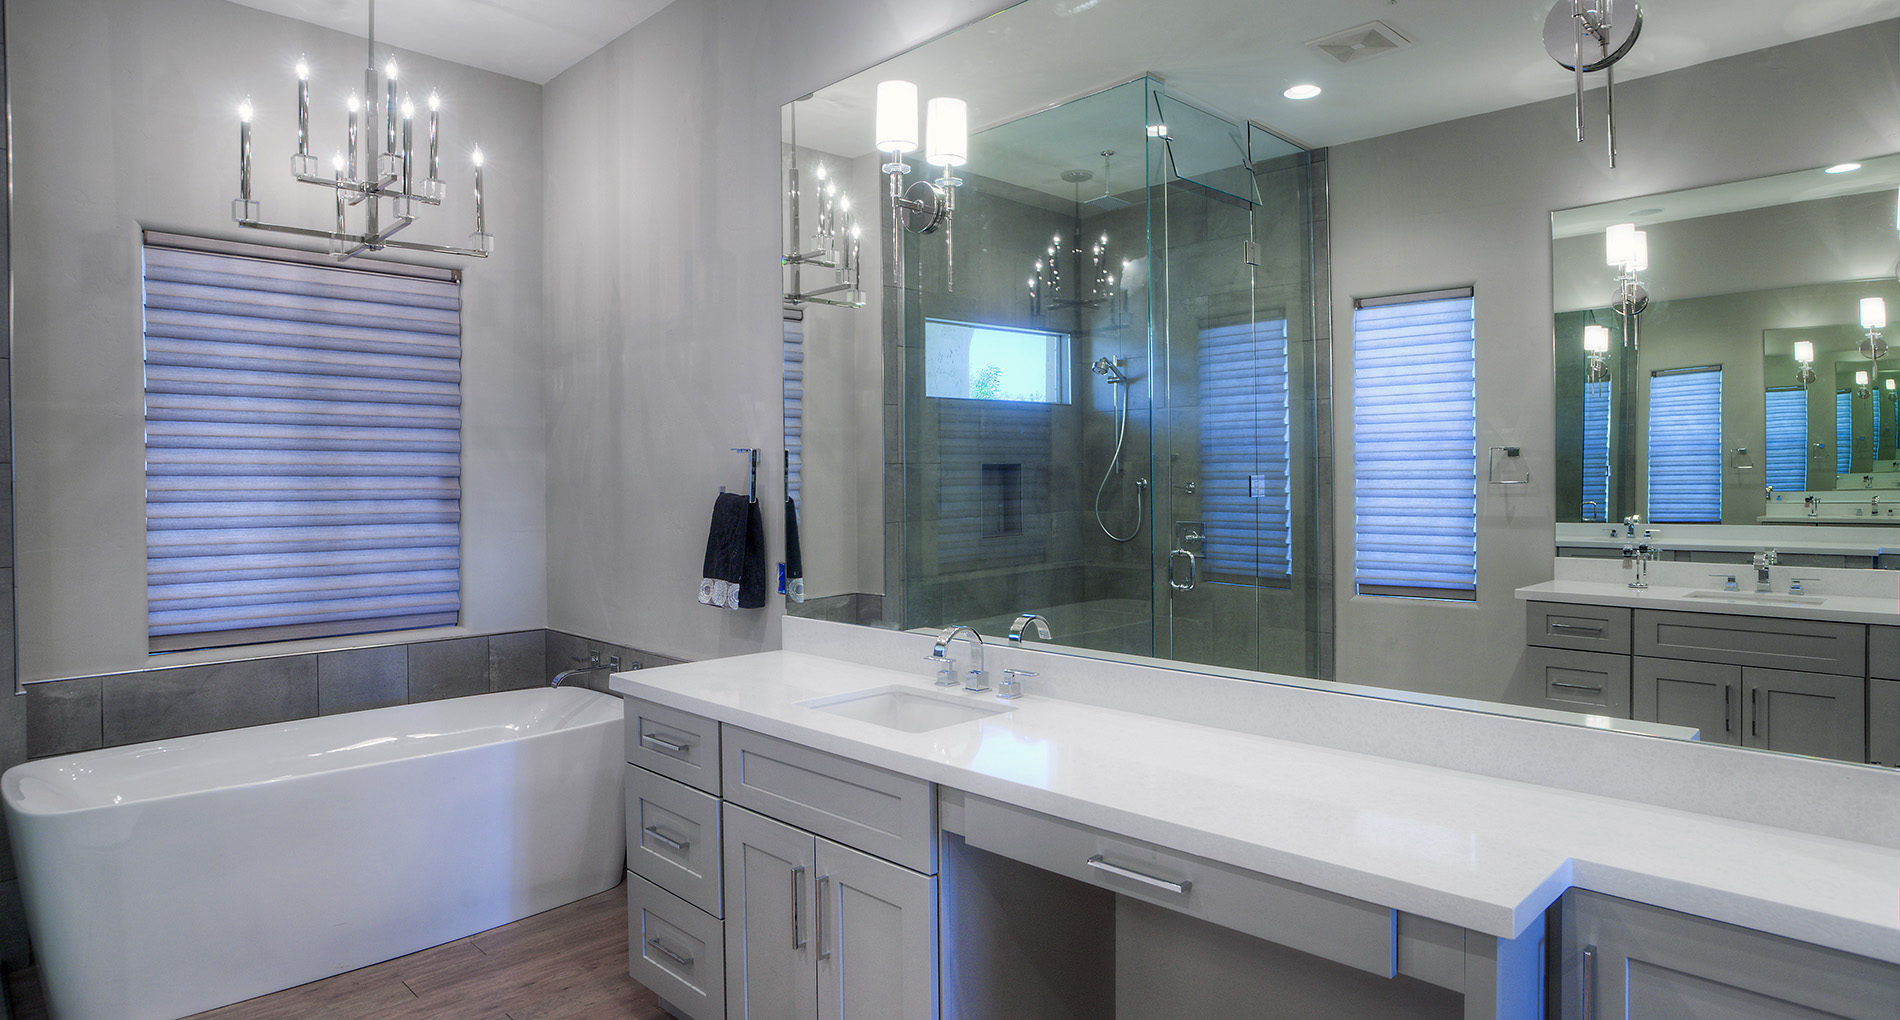 Bathroom Remodeling Design In Gilbert Alair Homes Gilbert - Gilbert bathroom remodeling